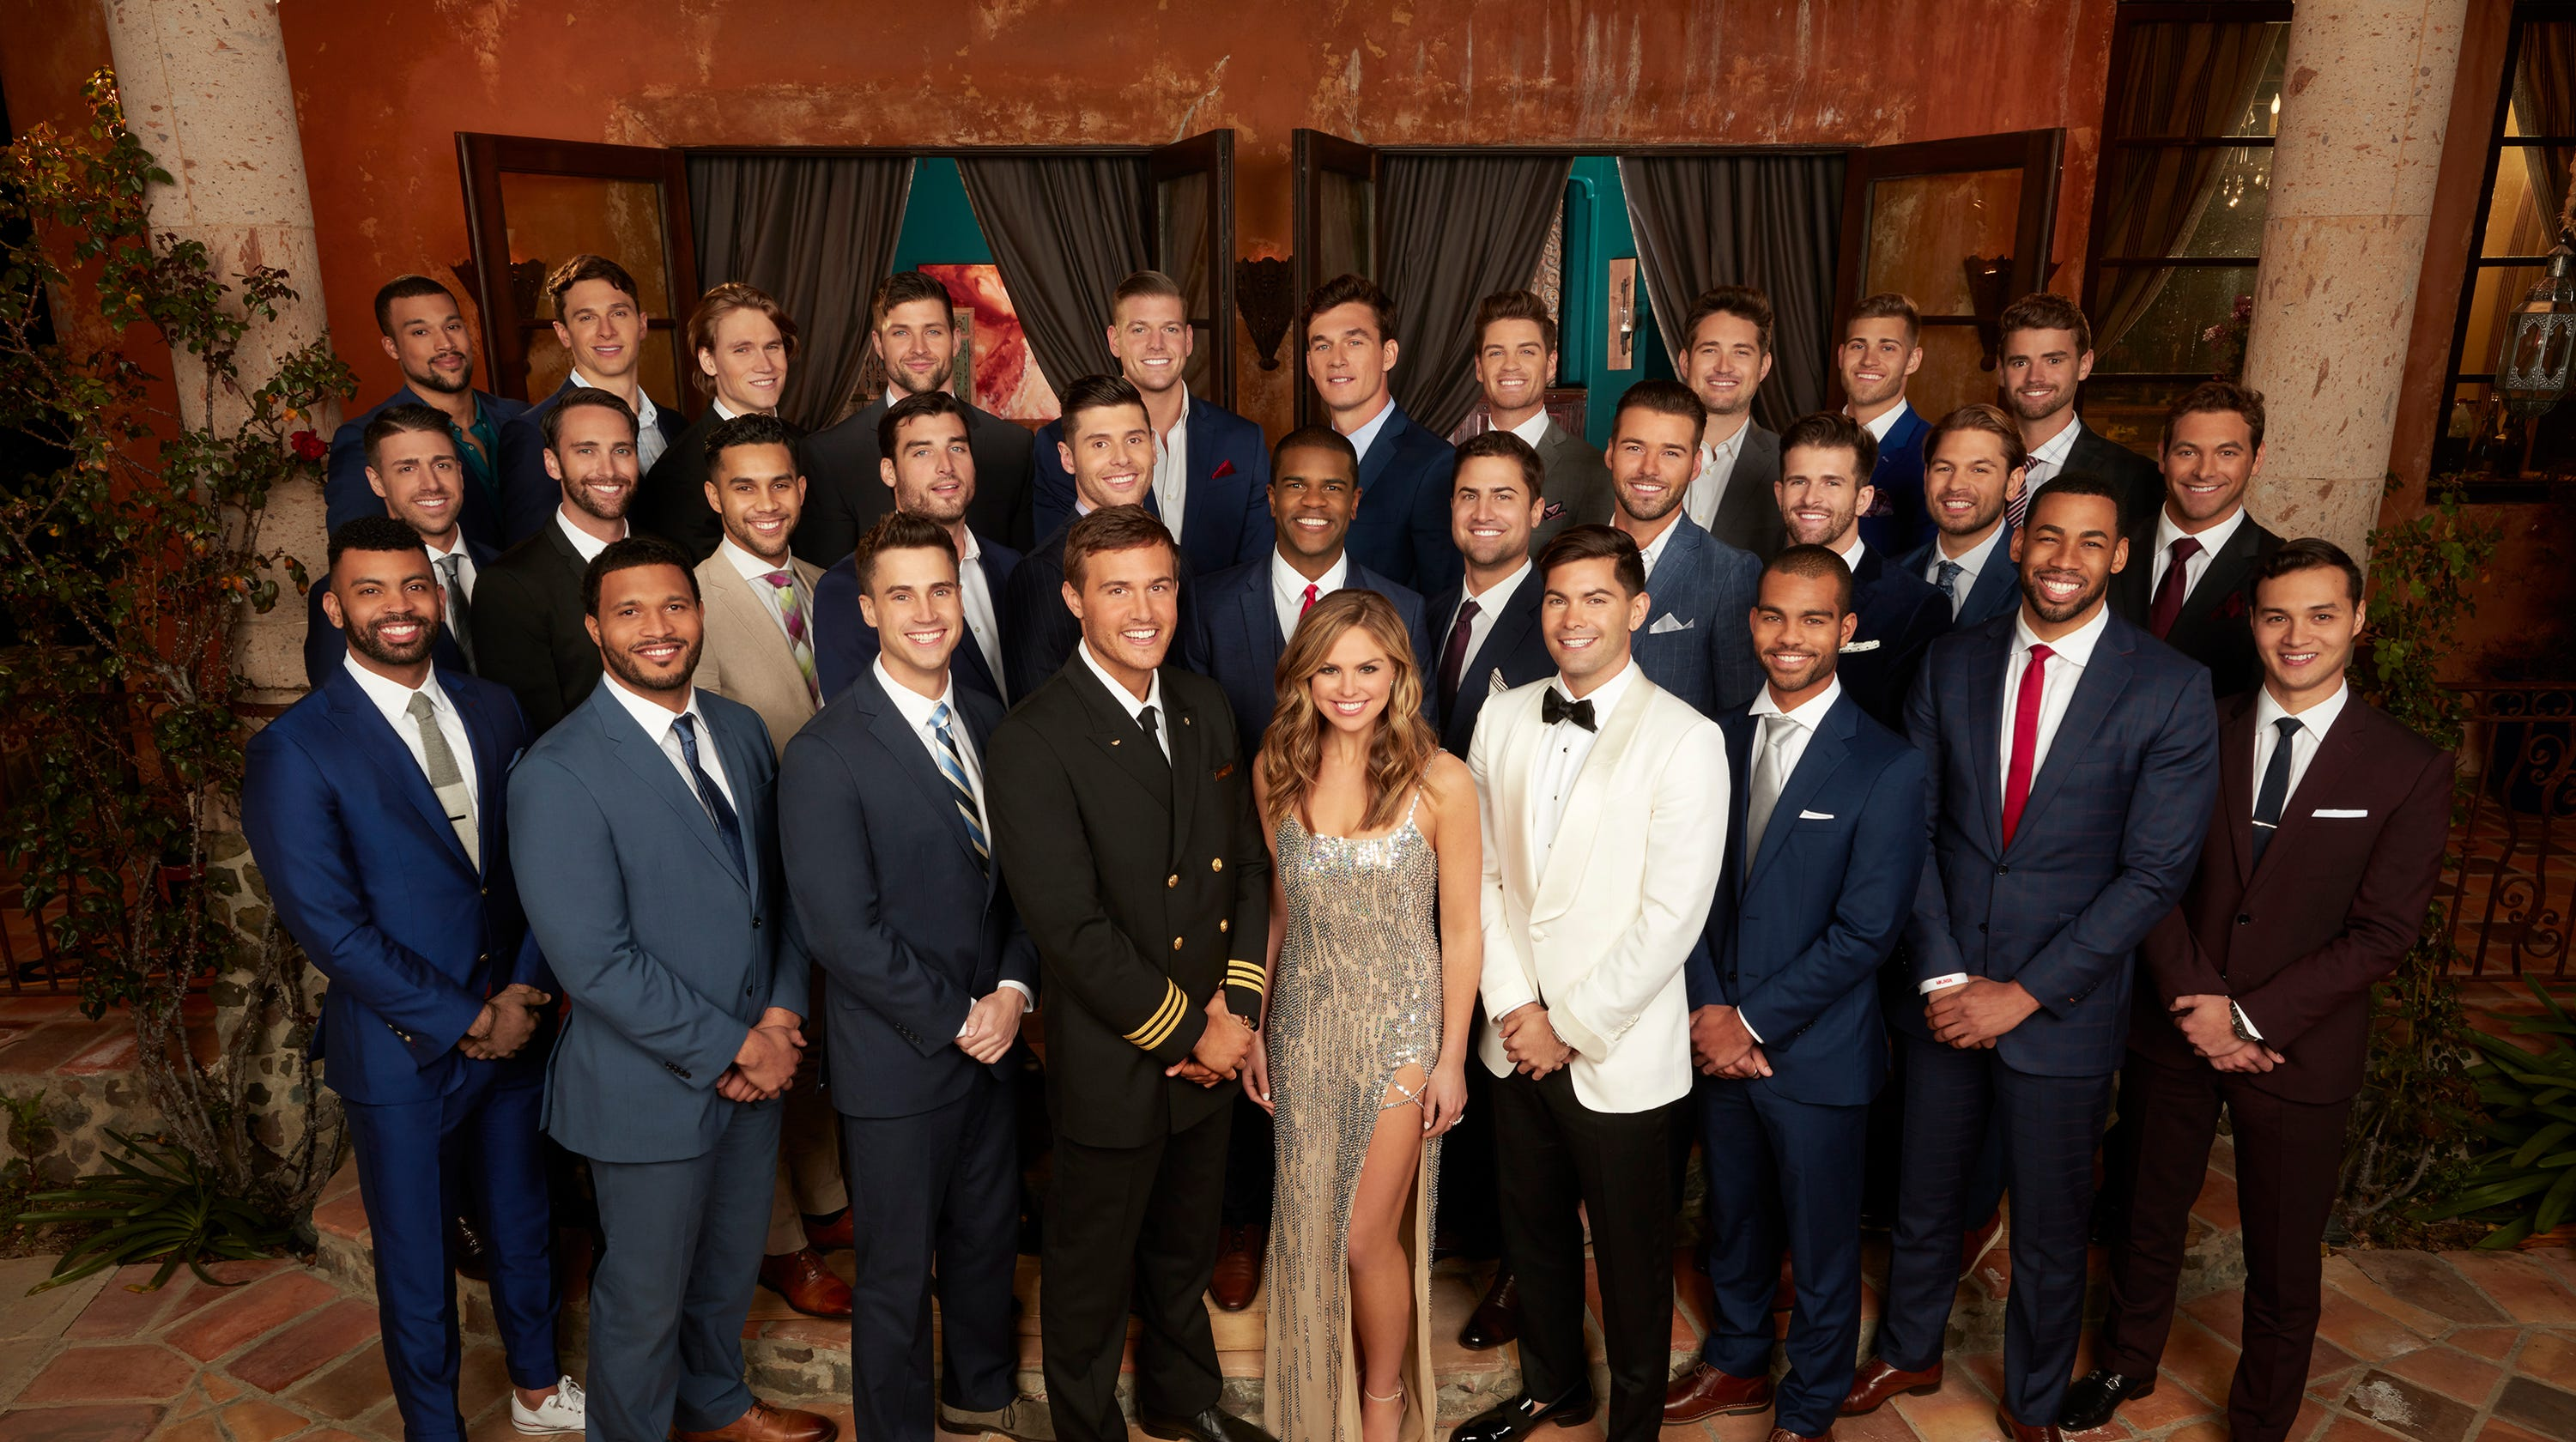 'The Bachelorette' recap: 'The Luke P. show is canceled,' Hannah declares